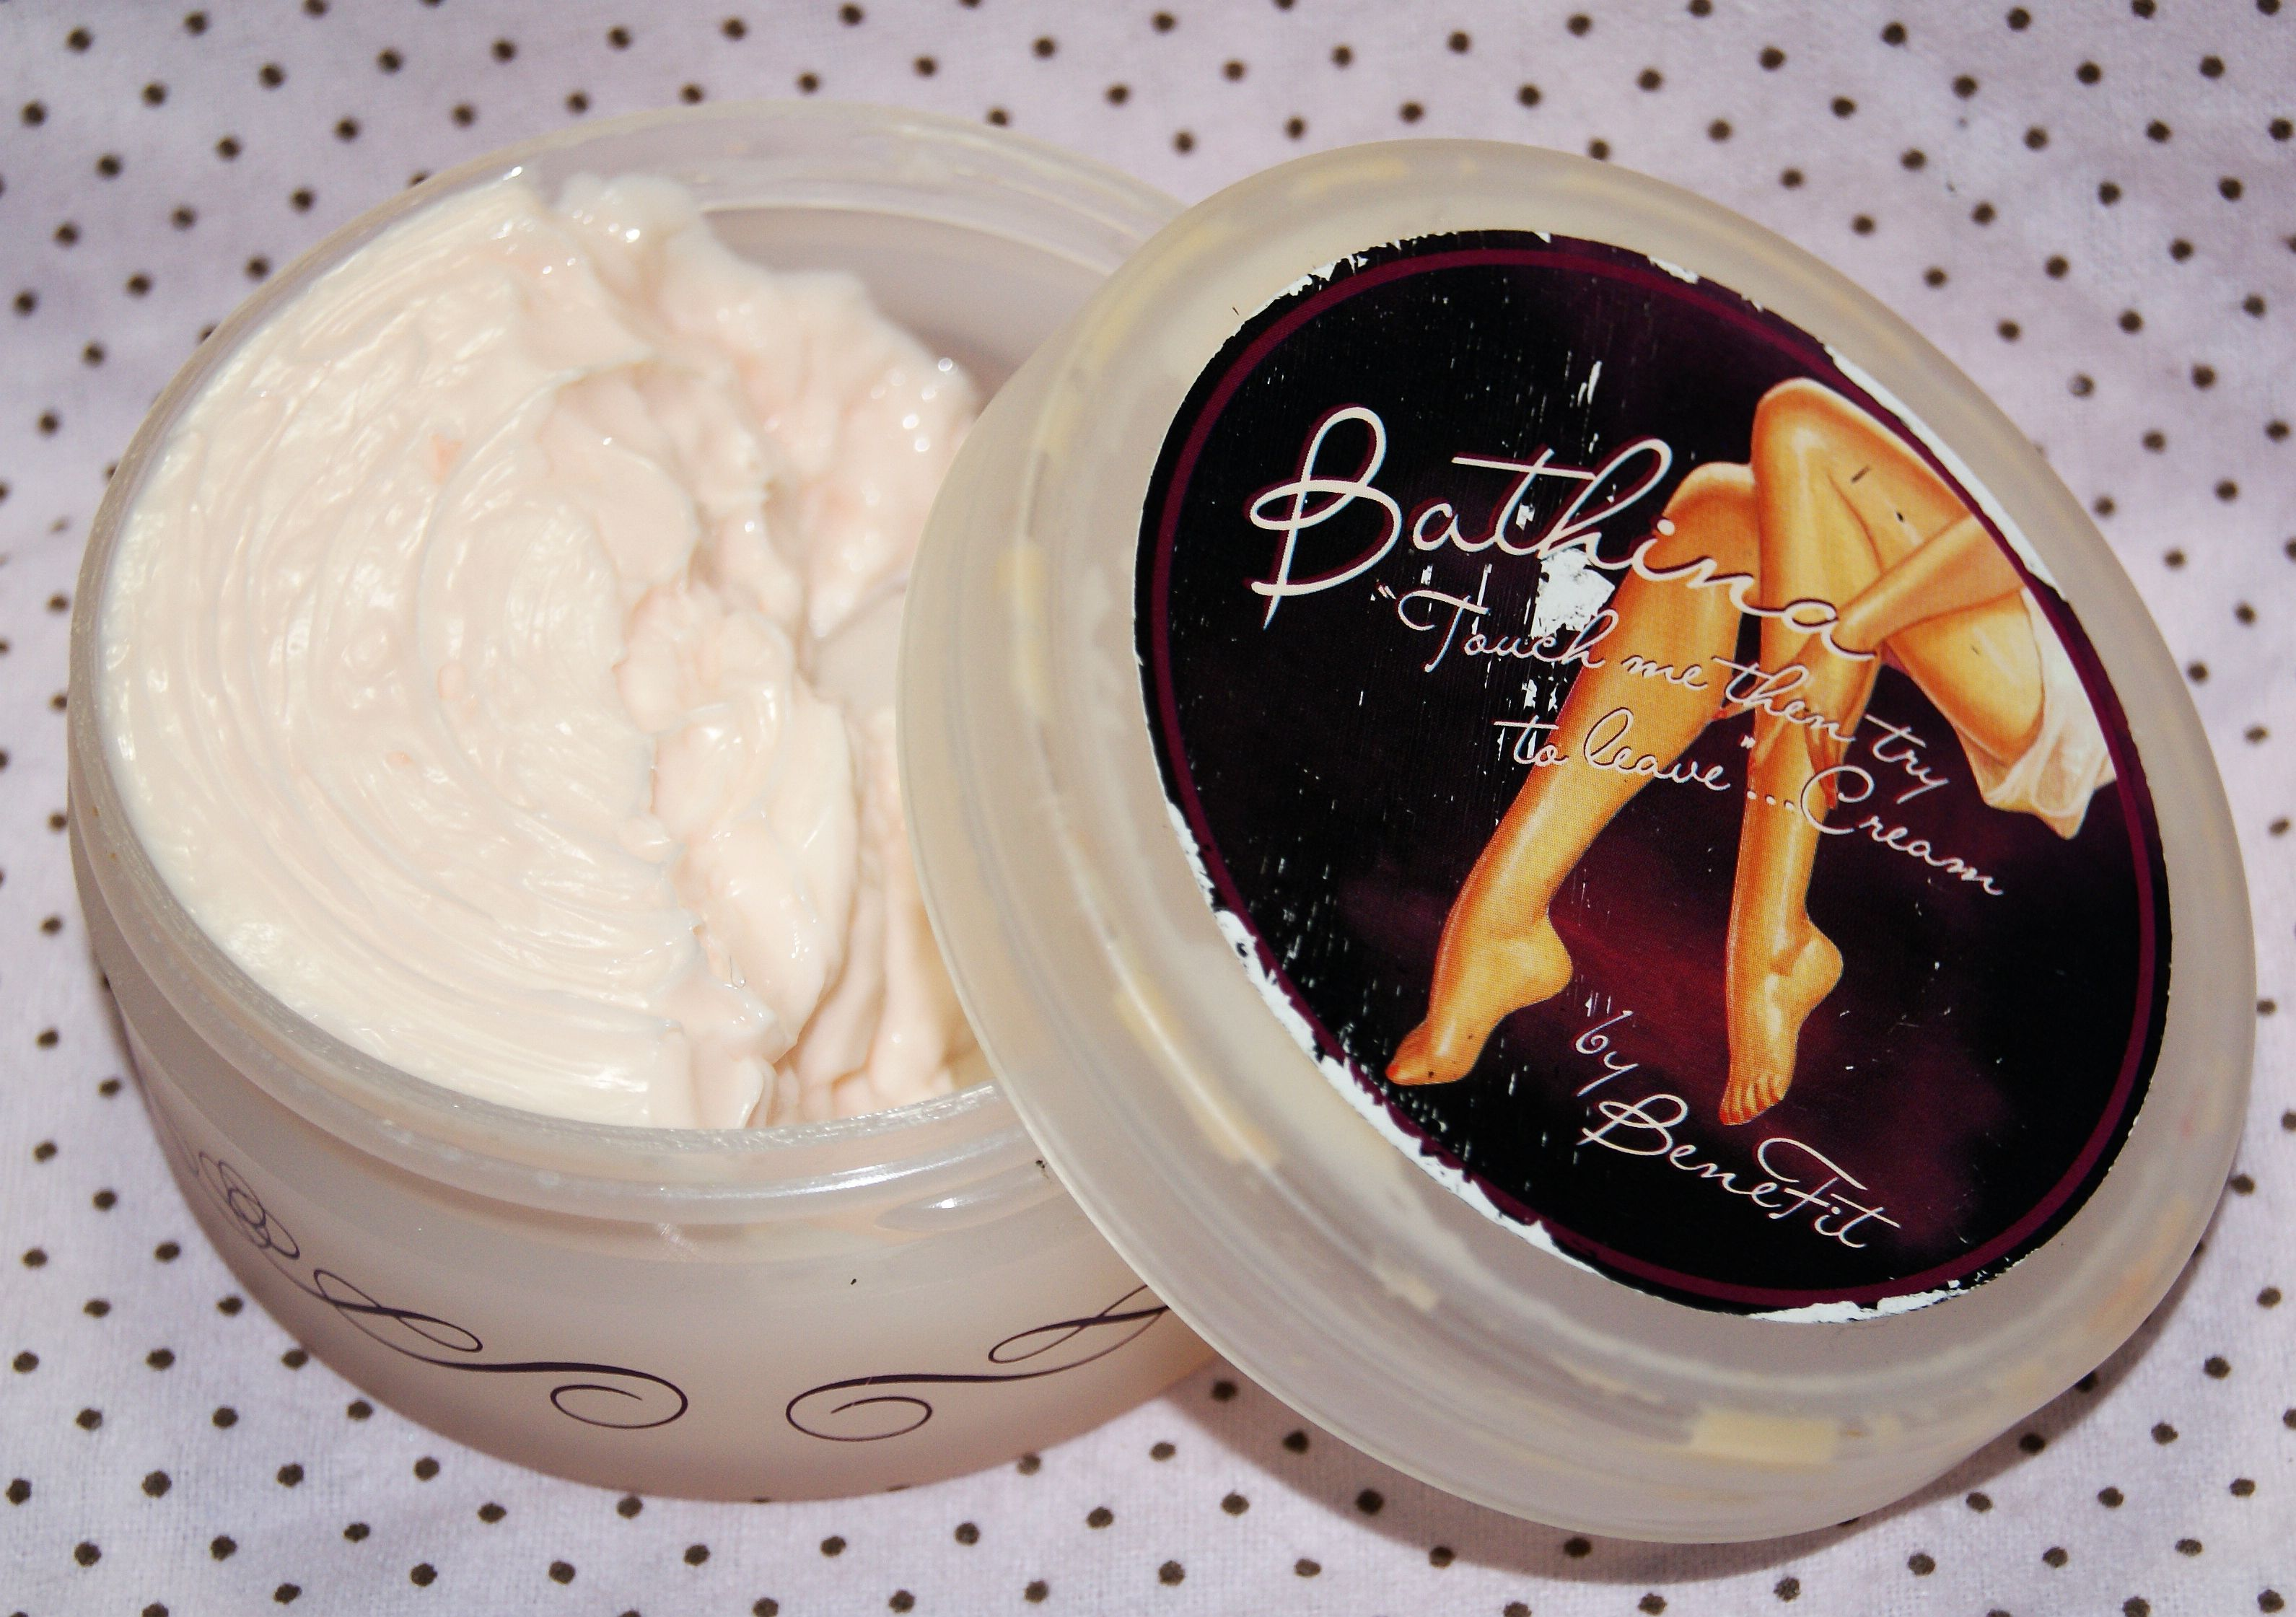 BeneFit Bathina Touch Me Then Try To Leave Cream full